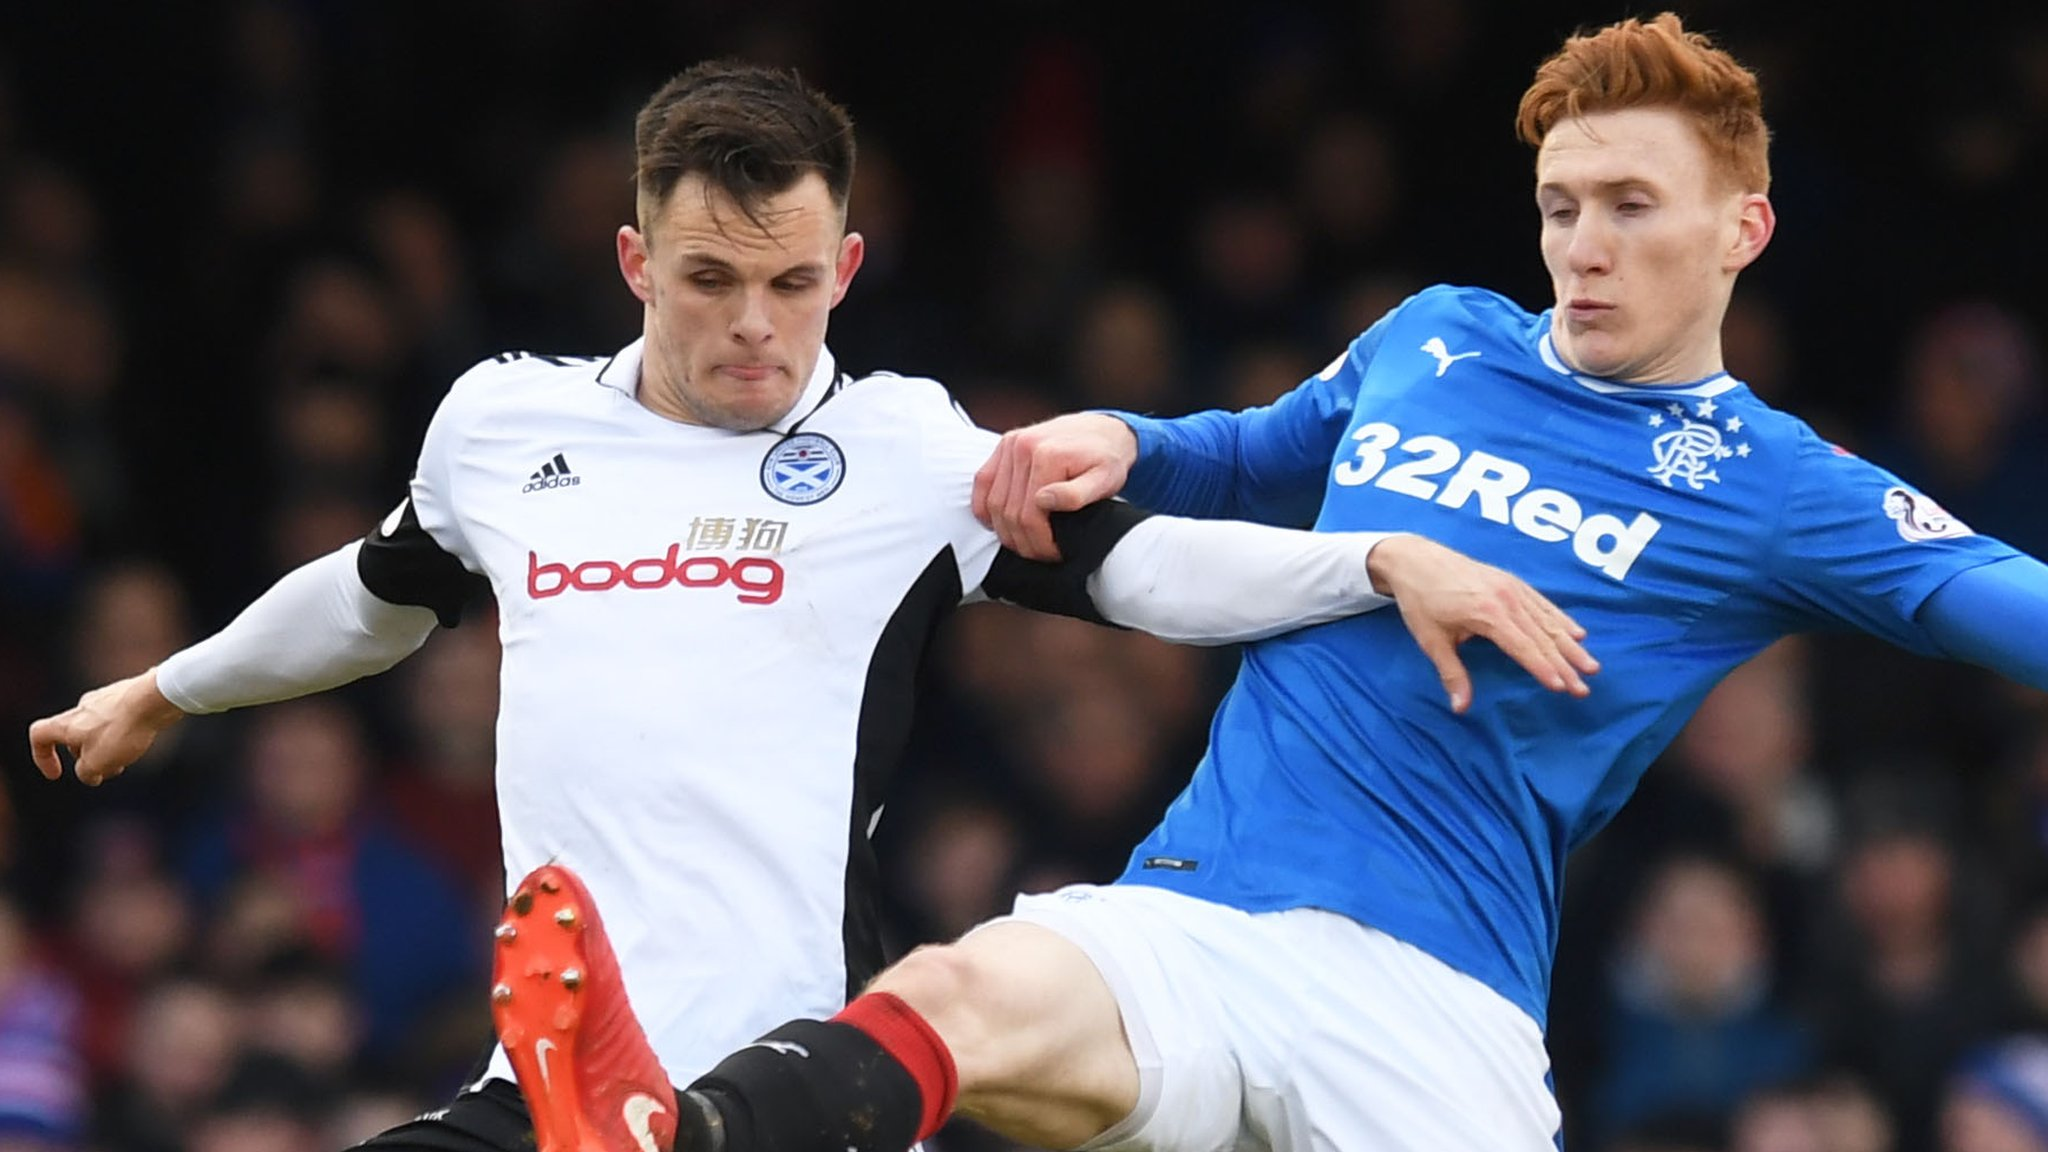 Rangers to host Ayr in Scottish League Cup last eight